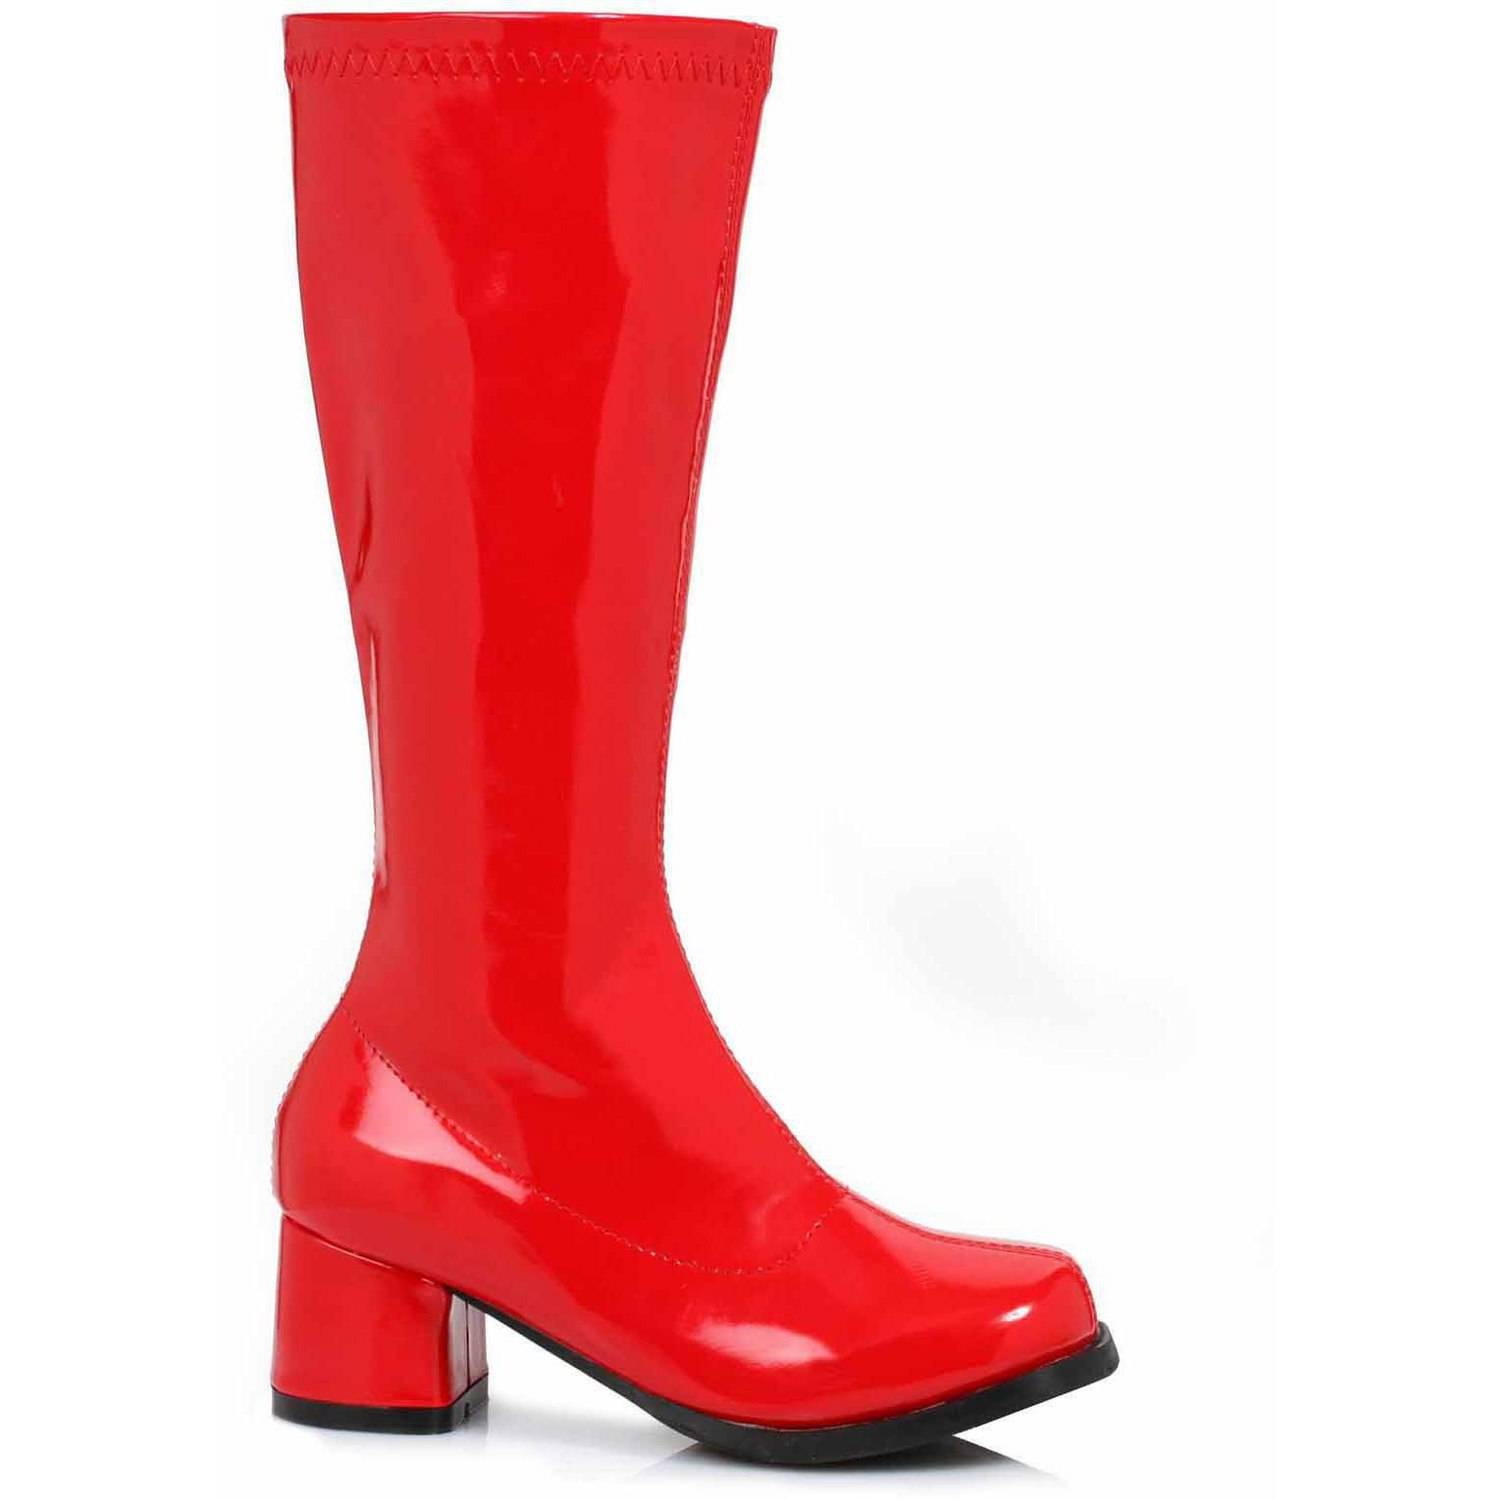 Dora Red Boots Girls' Child Halloween Accessory